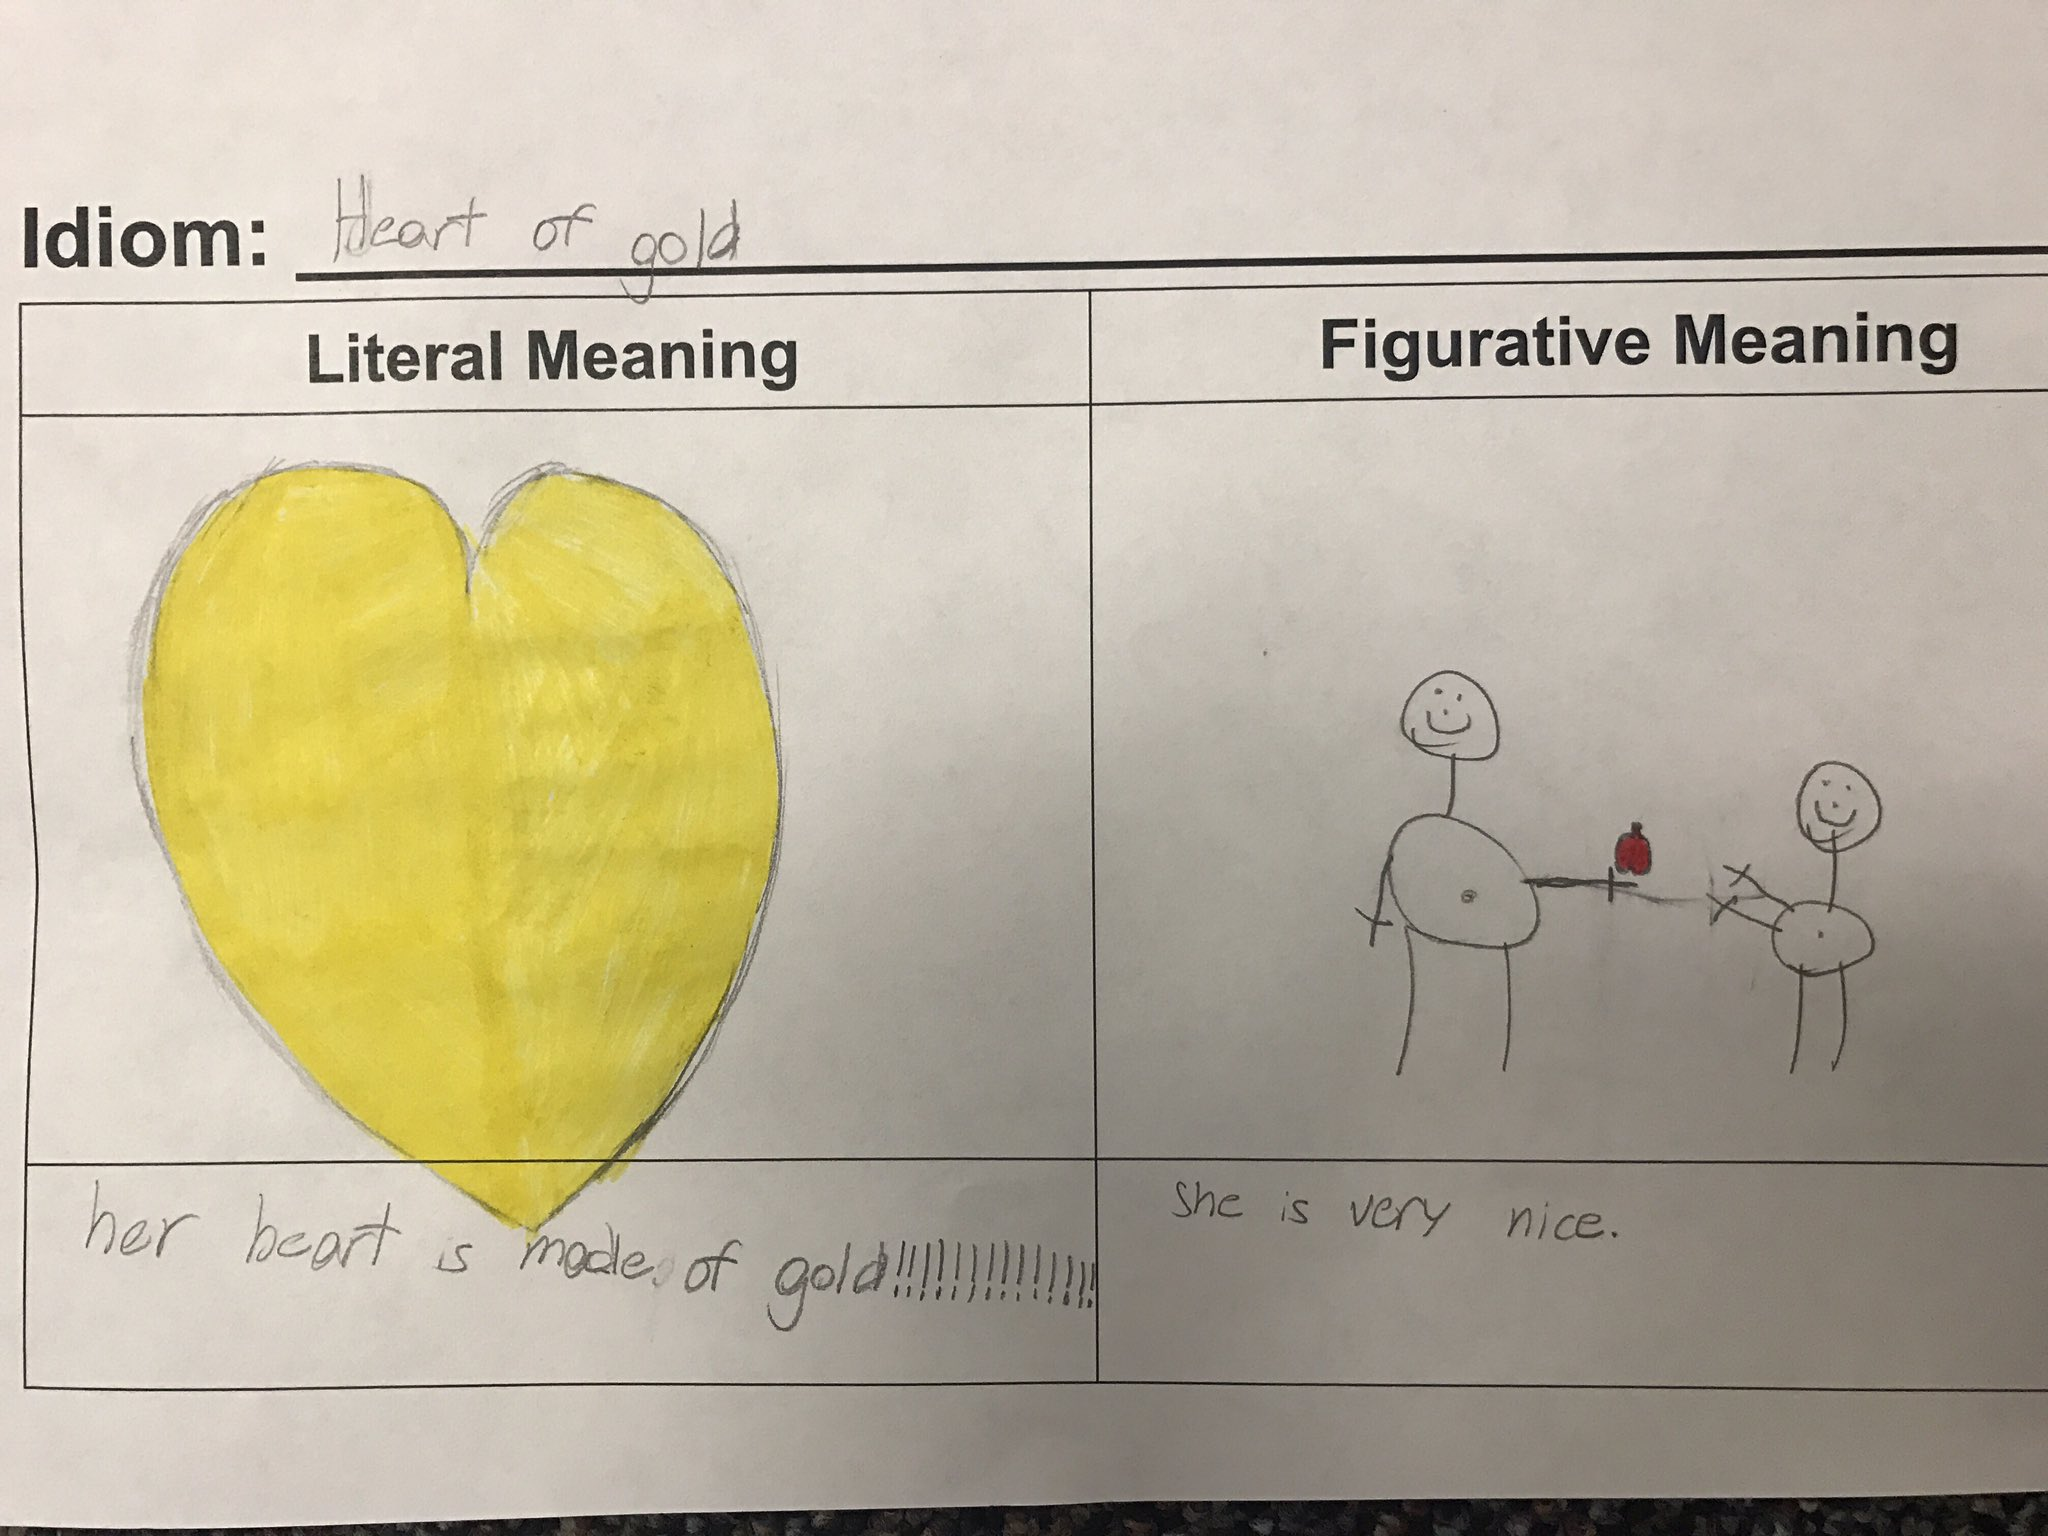 Emily Leininger On Twitter Fun With Idioms Students Became Experts On An Idiom And Shared The Literal And Figurative Meaning With Classmates Literacyd69 Https T Co N0mfkbvbsk